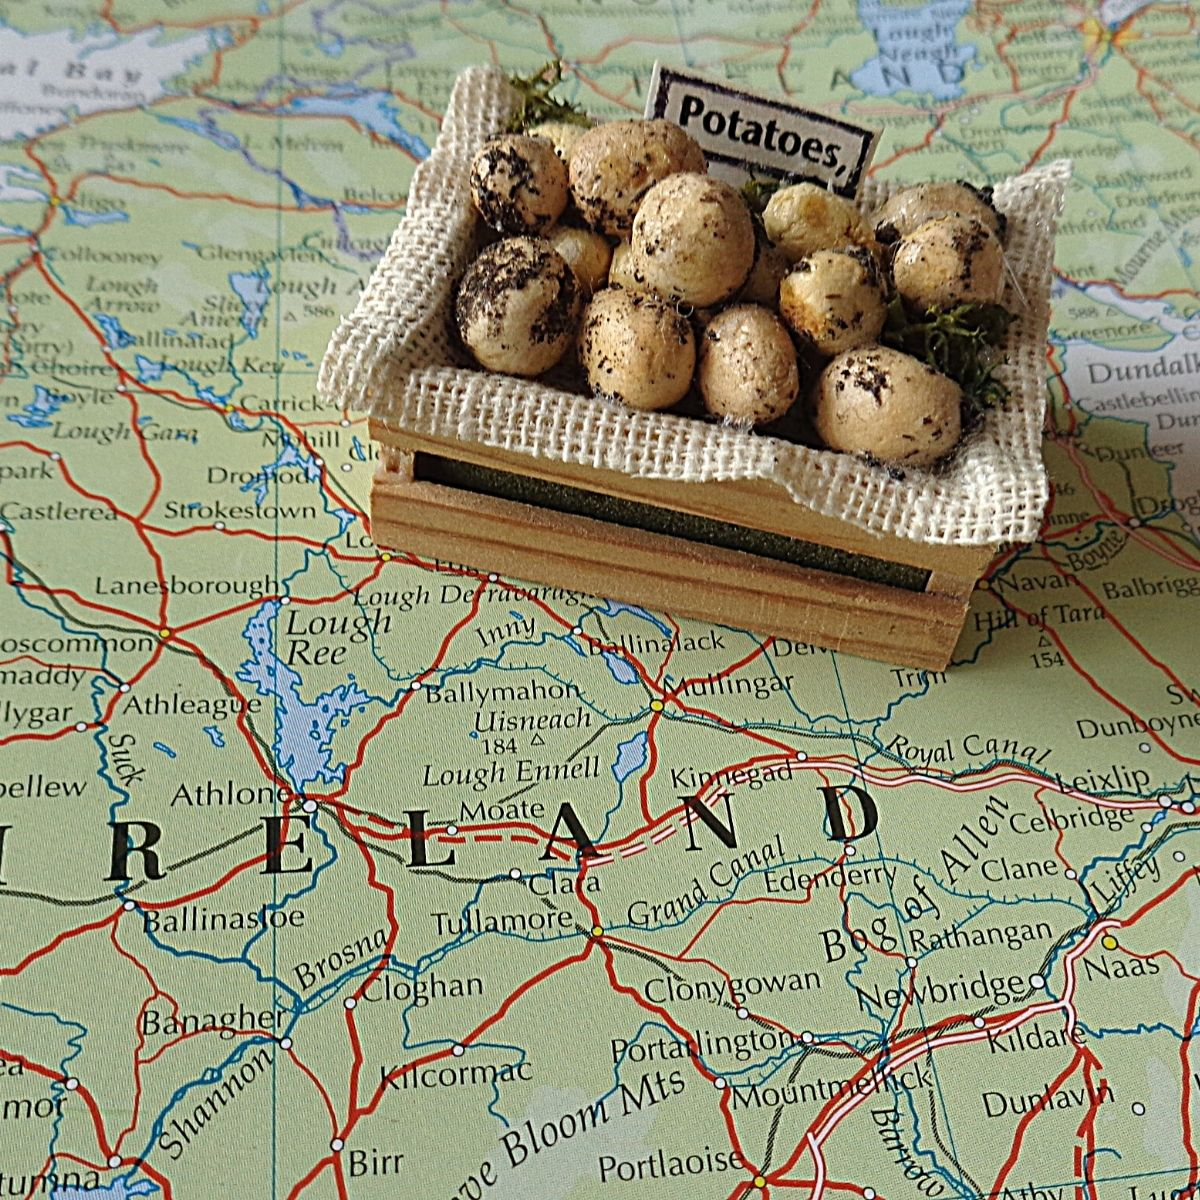 A small wooden crate of potatoes displayed on a map of Ireland